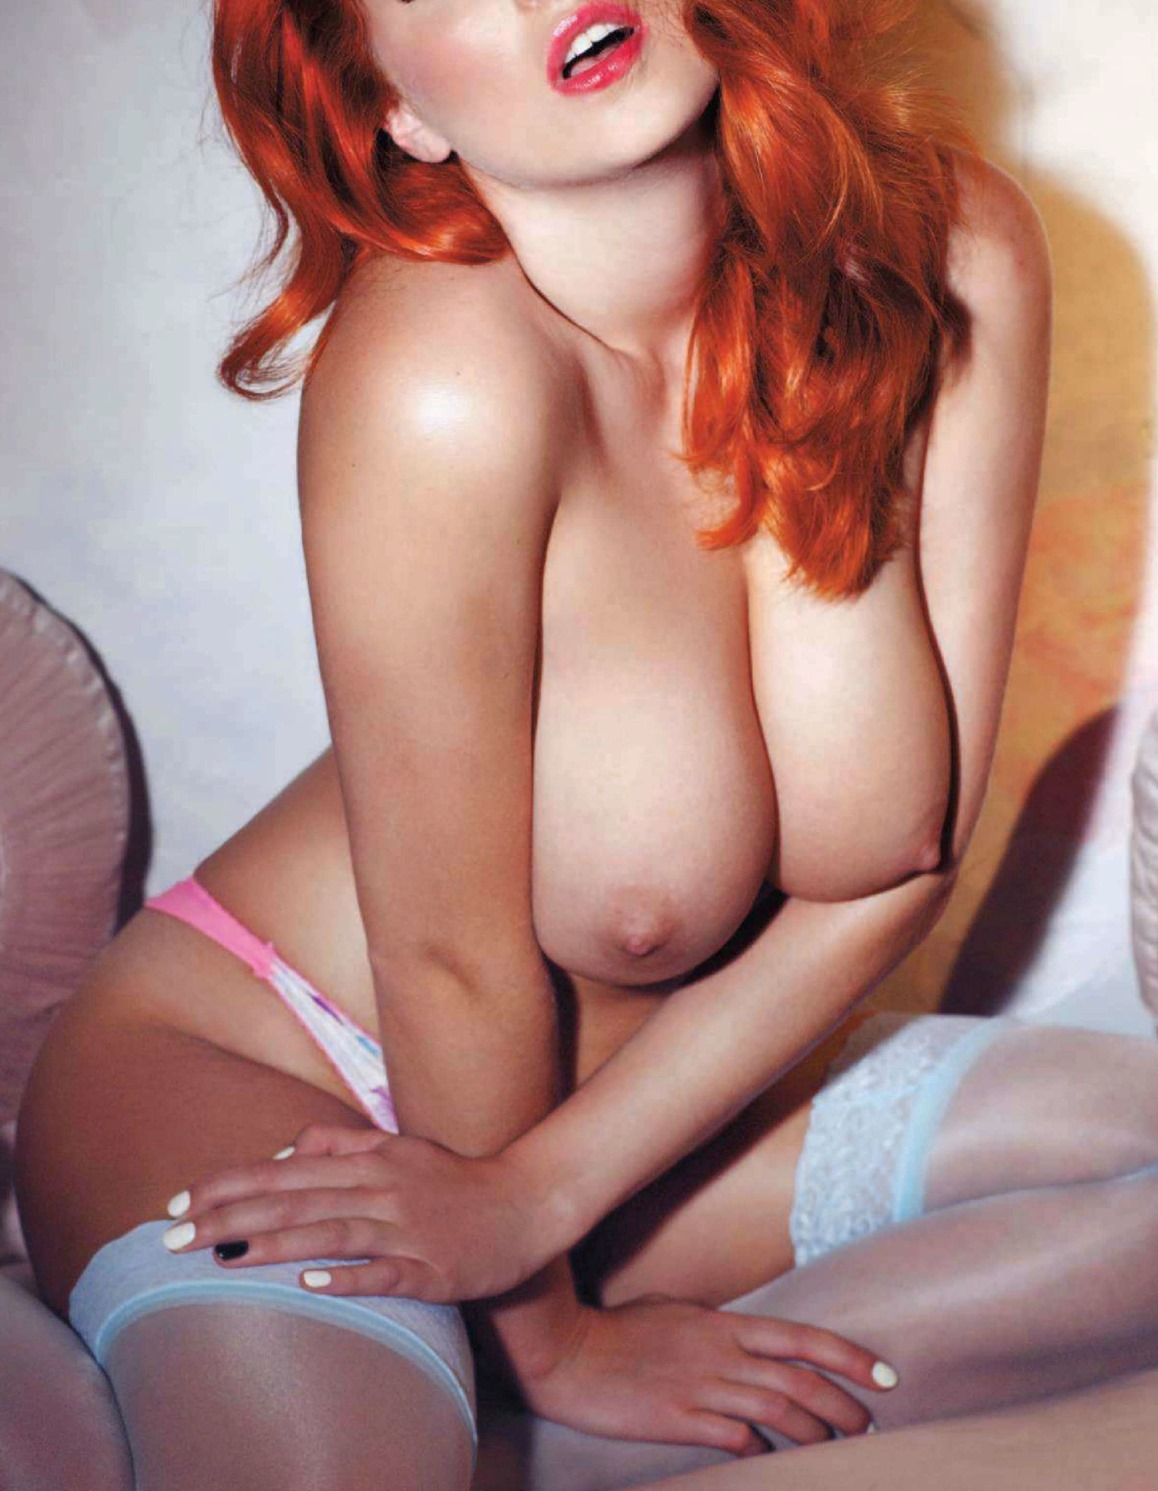 ruiva uk escort videos